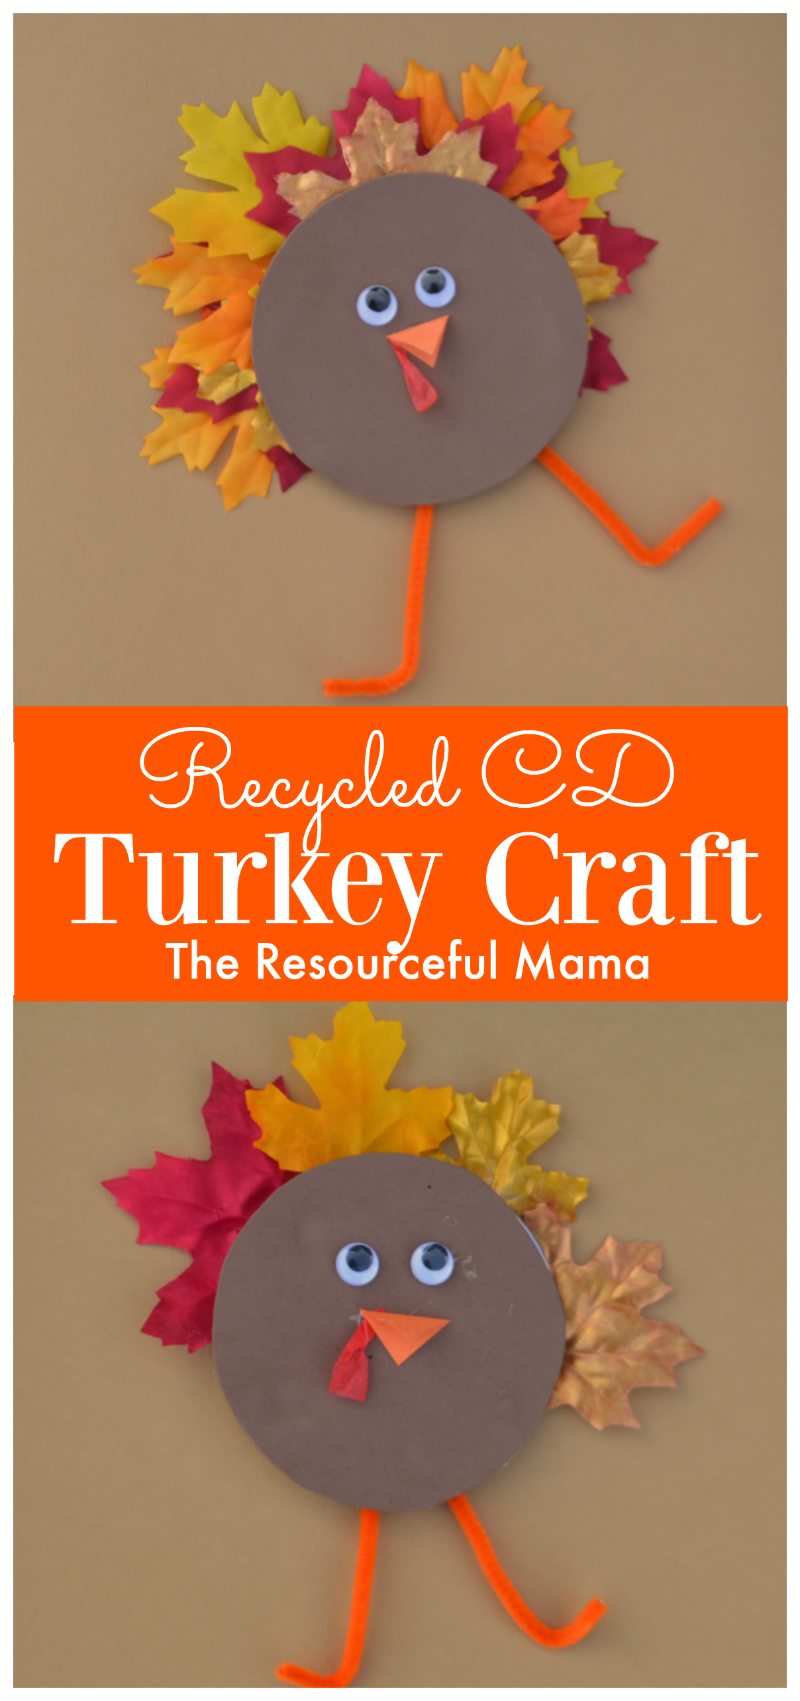 Recycled CD Turkey Kid Craft #recycledcd Transform and old CD or DVD into a turkey kid craft for Thanksgiving. recycled craft | upcycled craft | fall #recycledcd